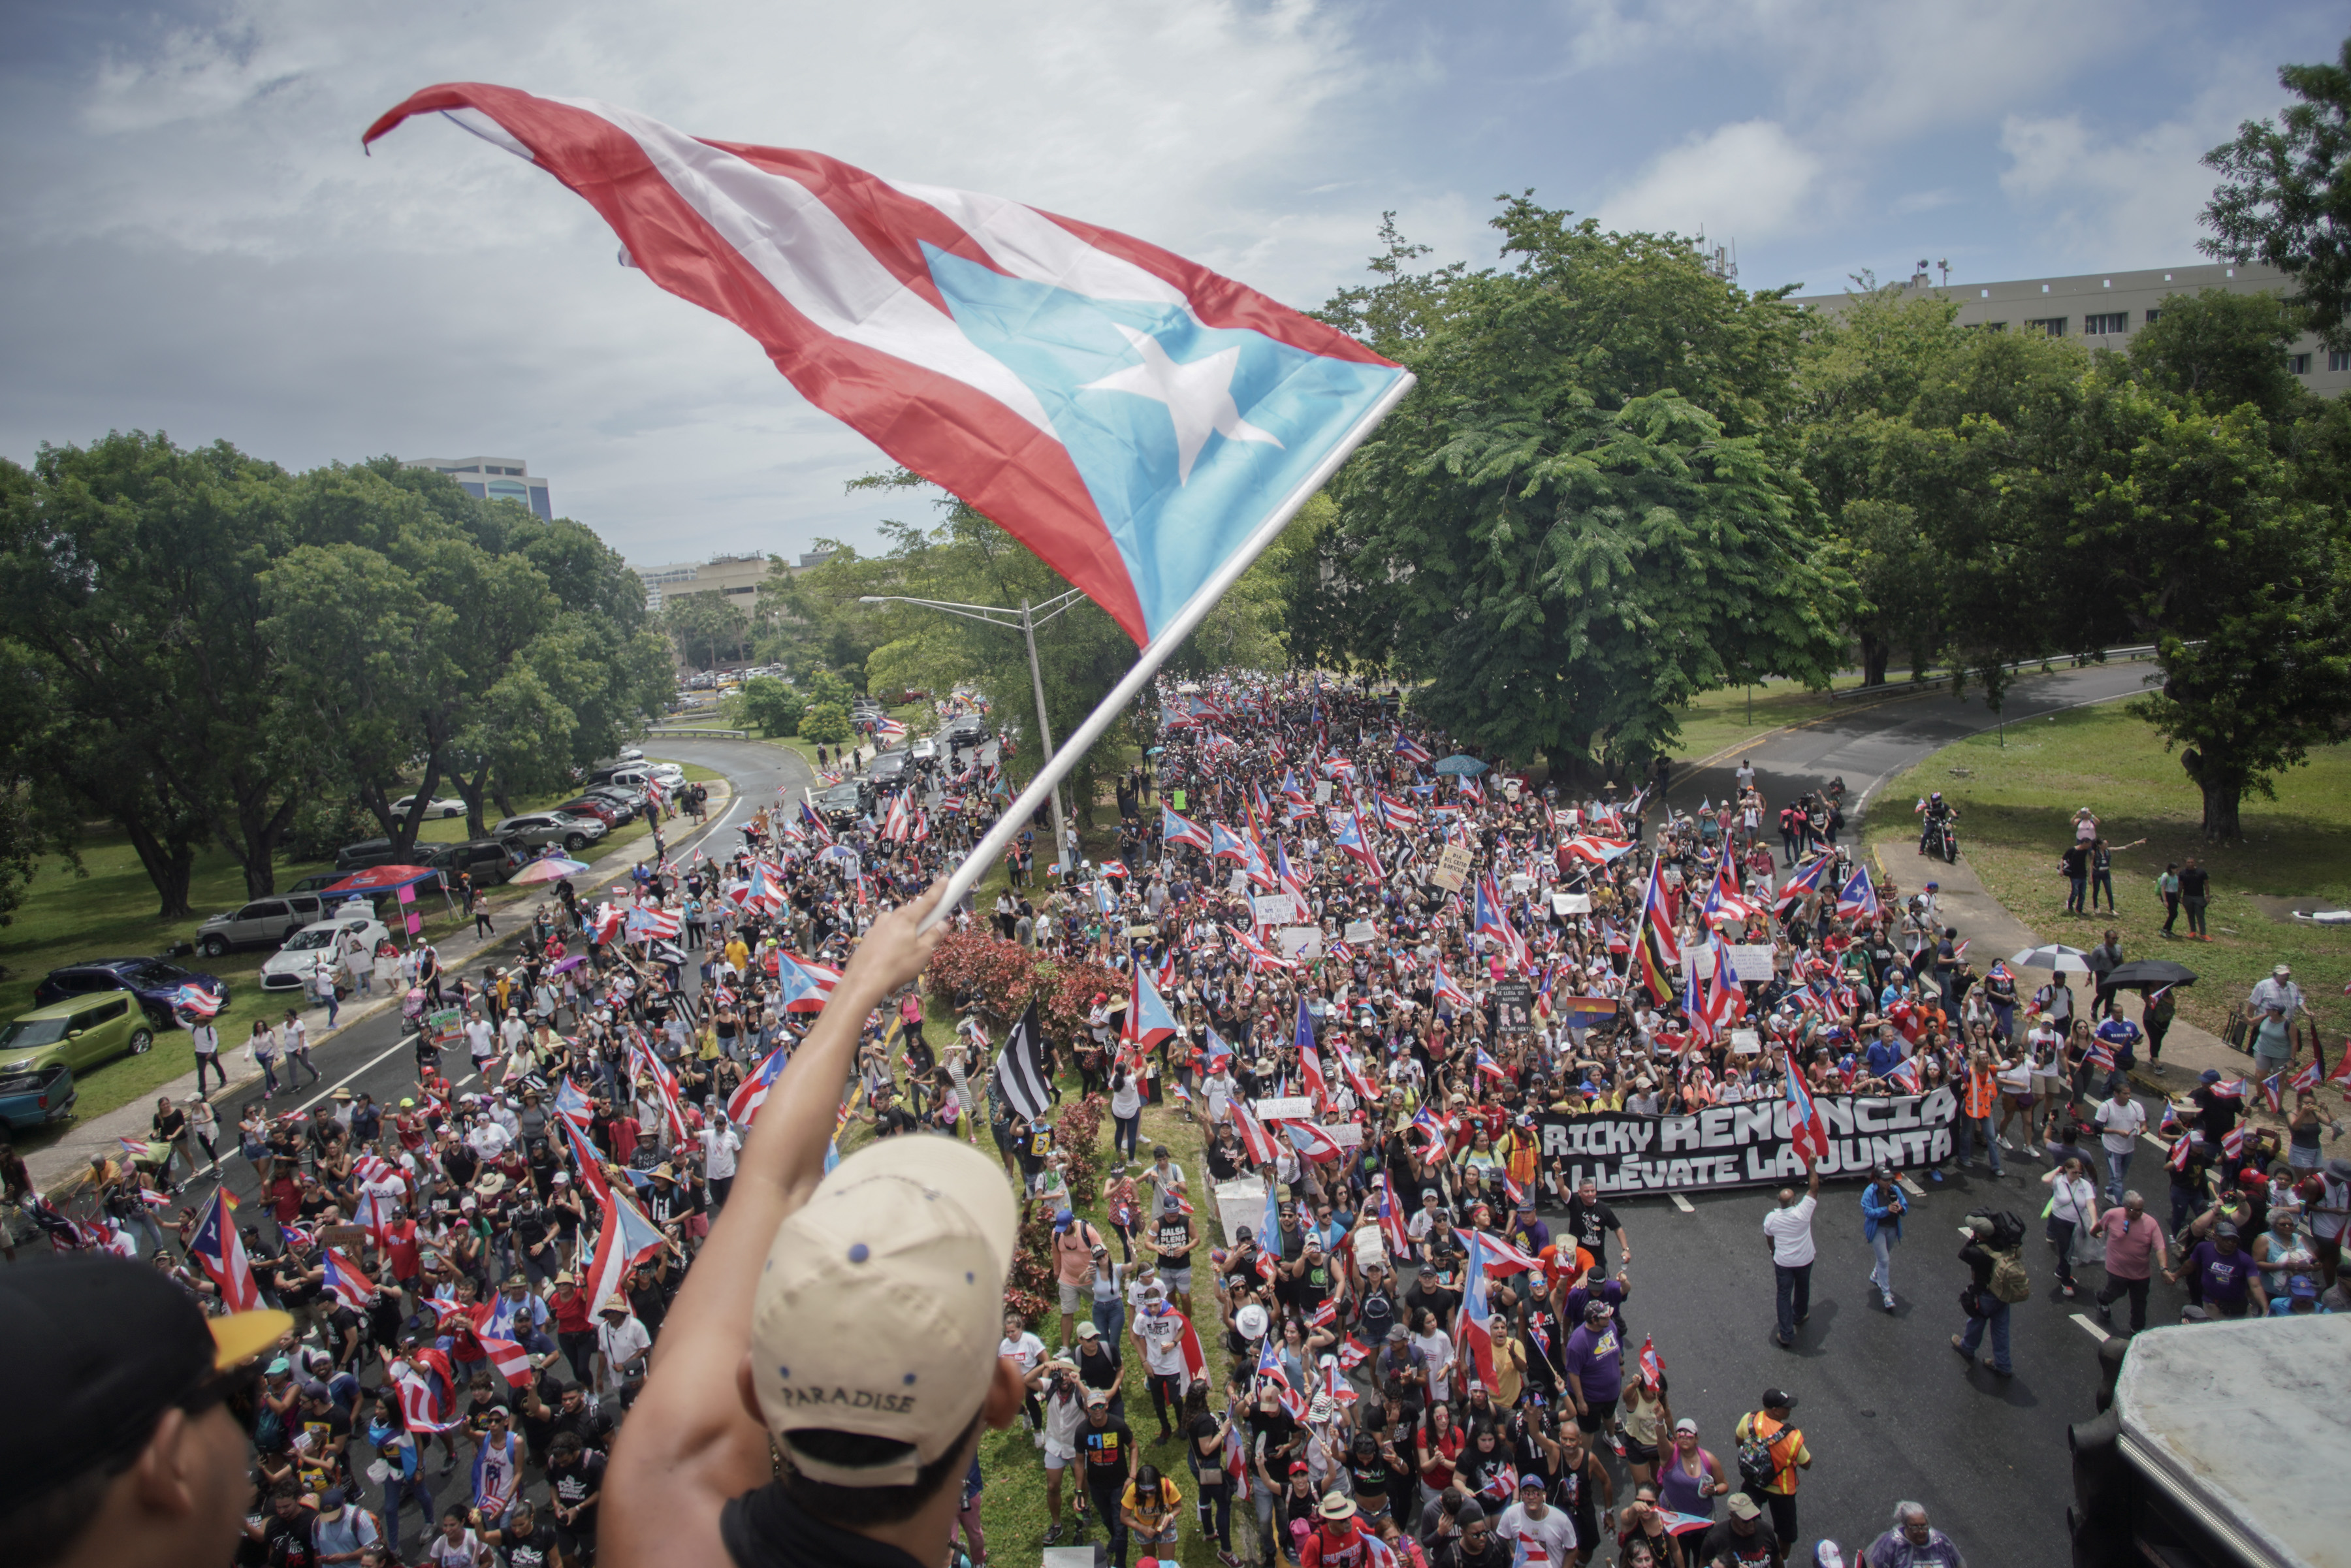 A man waves the Puerto Rican flag in front of a group of protesters.